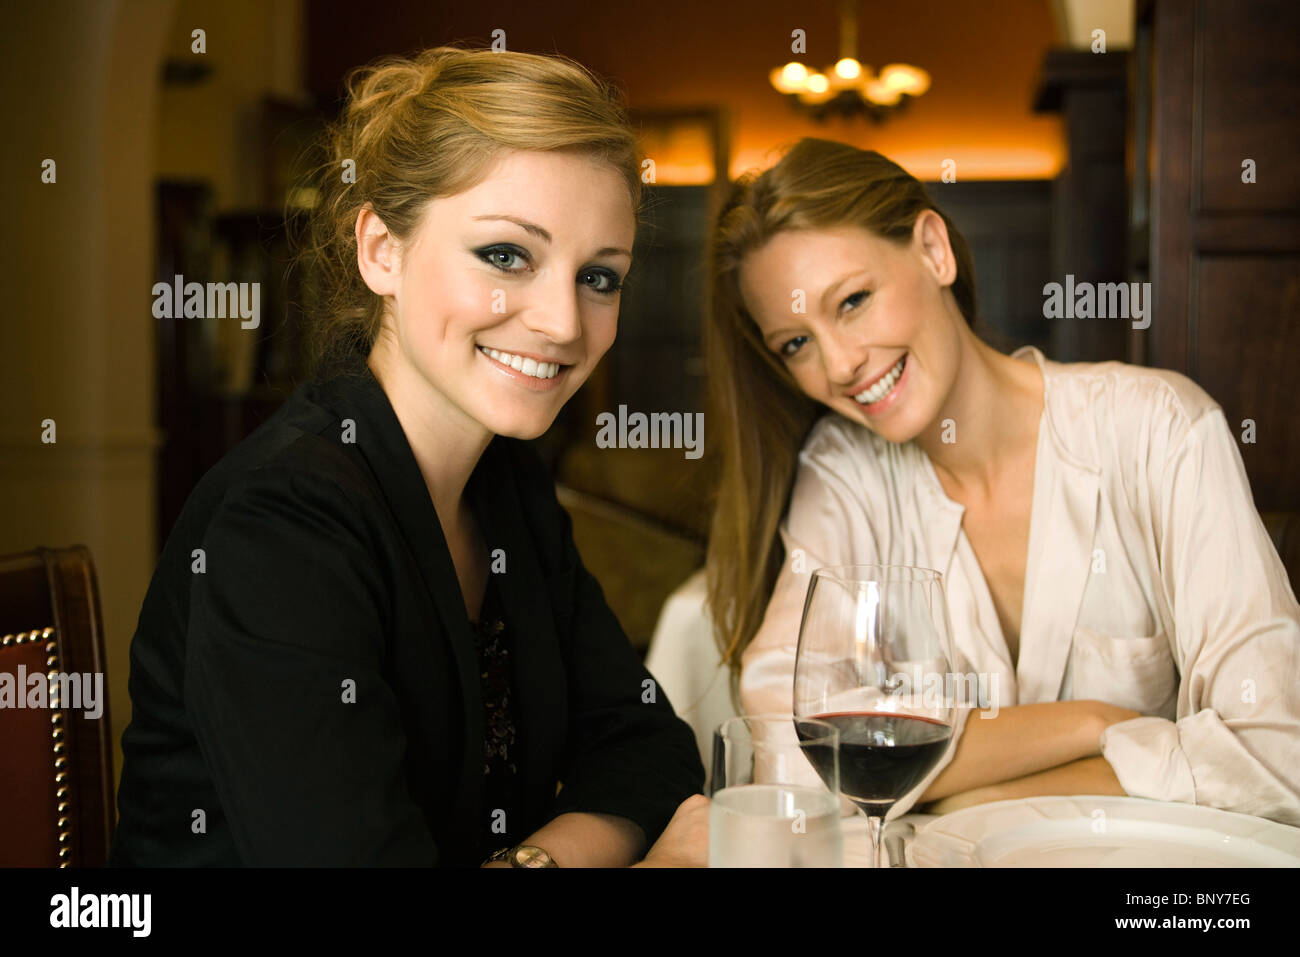 Woman having glass of wine with friend in restaurant - Stock Image